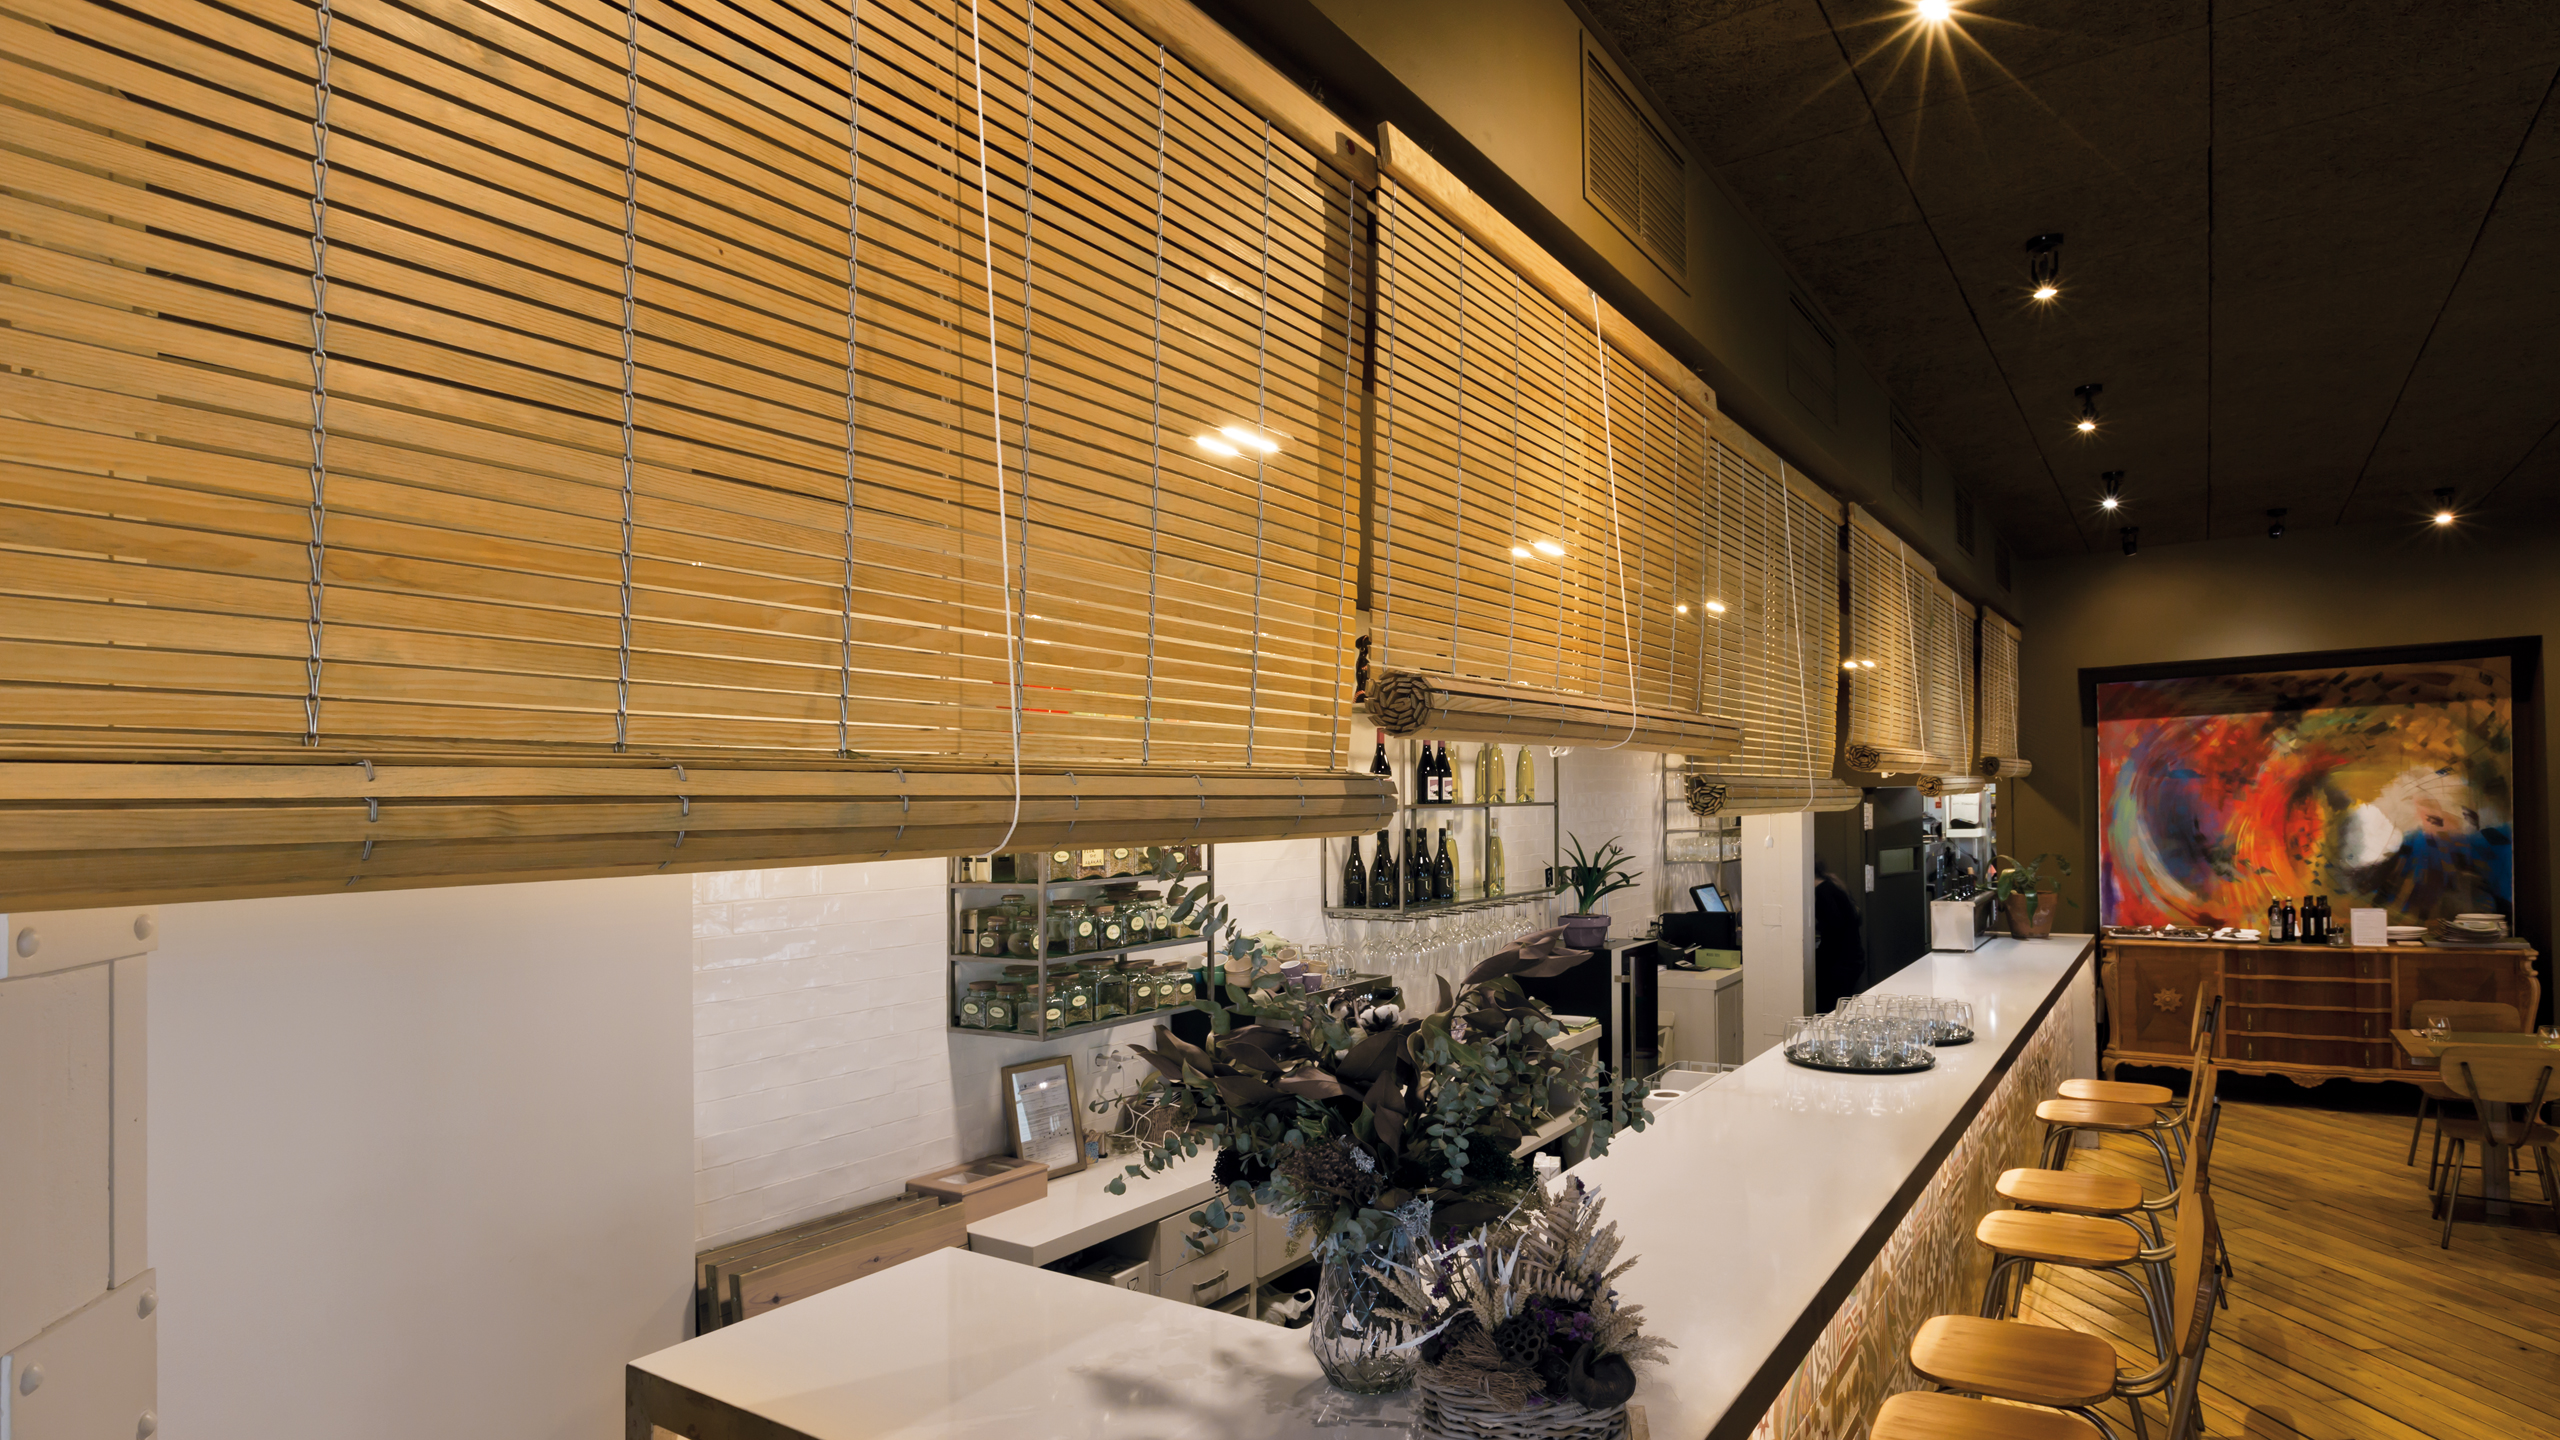 Alicantina shutters installed in a stylish city-centre restaurant